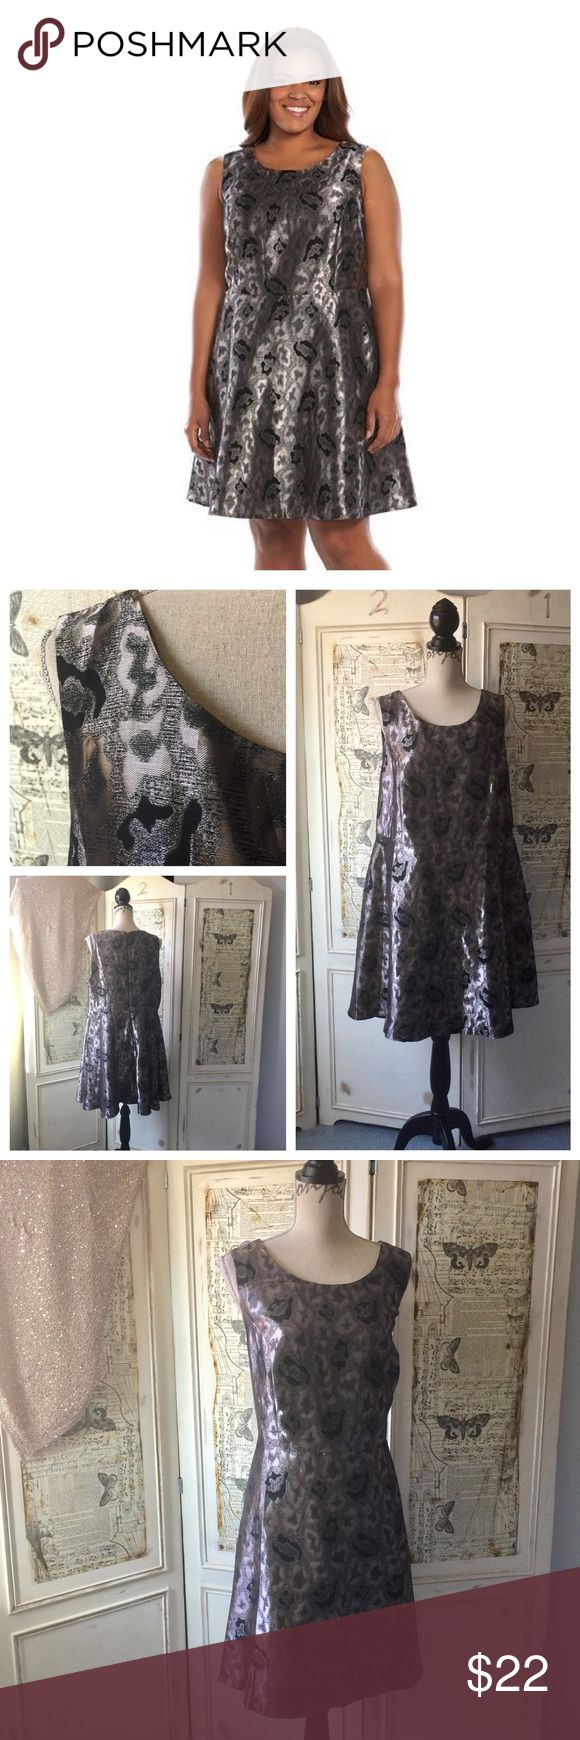 """Apt. 9  Foil Jacquard Fit & Flare Dress Sz 18W NWT Plus Size Apt. 9  Foil Jacquard Fit & Flare Dress Sz 18W NWT.  Metallic fit and flare, fully lined, back zip.  61% polyester 39% rayon. Lining 100% polyester. Measures 35"""" in length. Bust approx. 42"""", waist approx. 40"""", hips approx. 50"""".  #lisamariesvibe #apt9 #plussize #curvy #foiljacquard #metallicdress #occasion #datenight #weartowedding #18w #nwt Apt. 9 Dresses"""